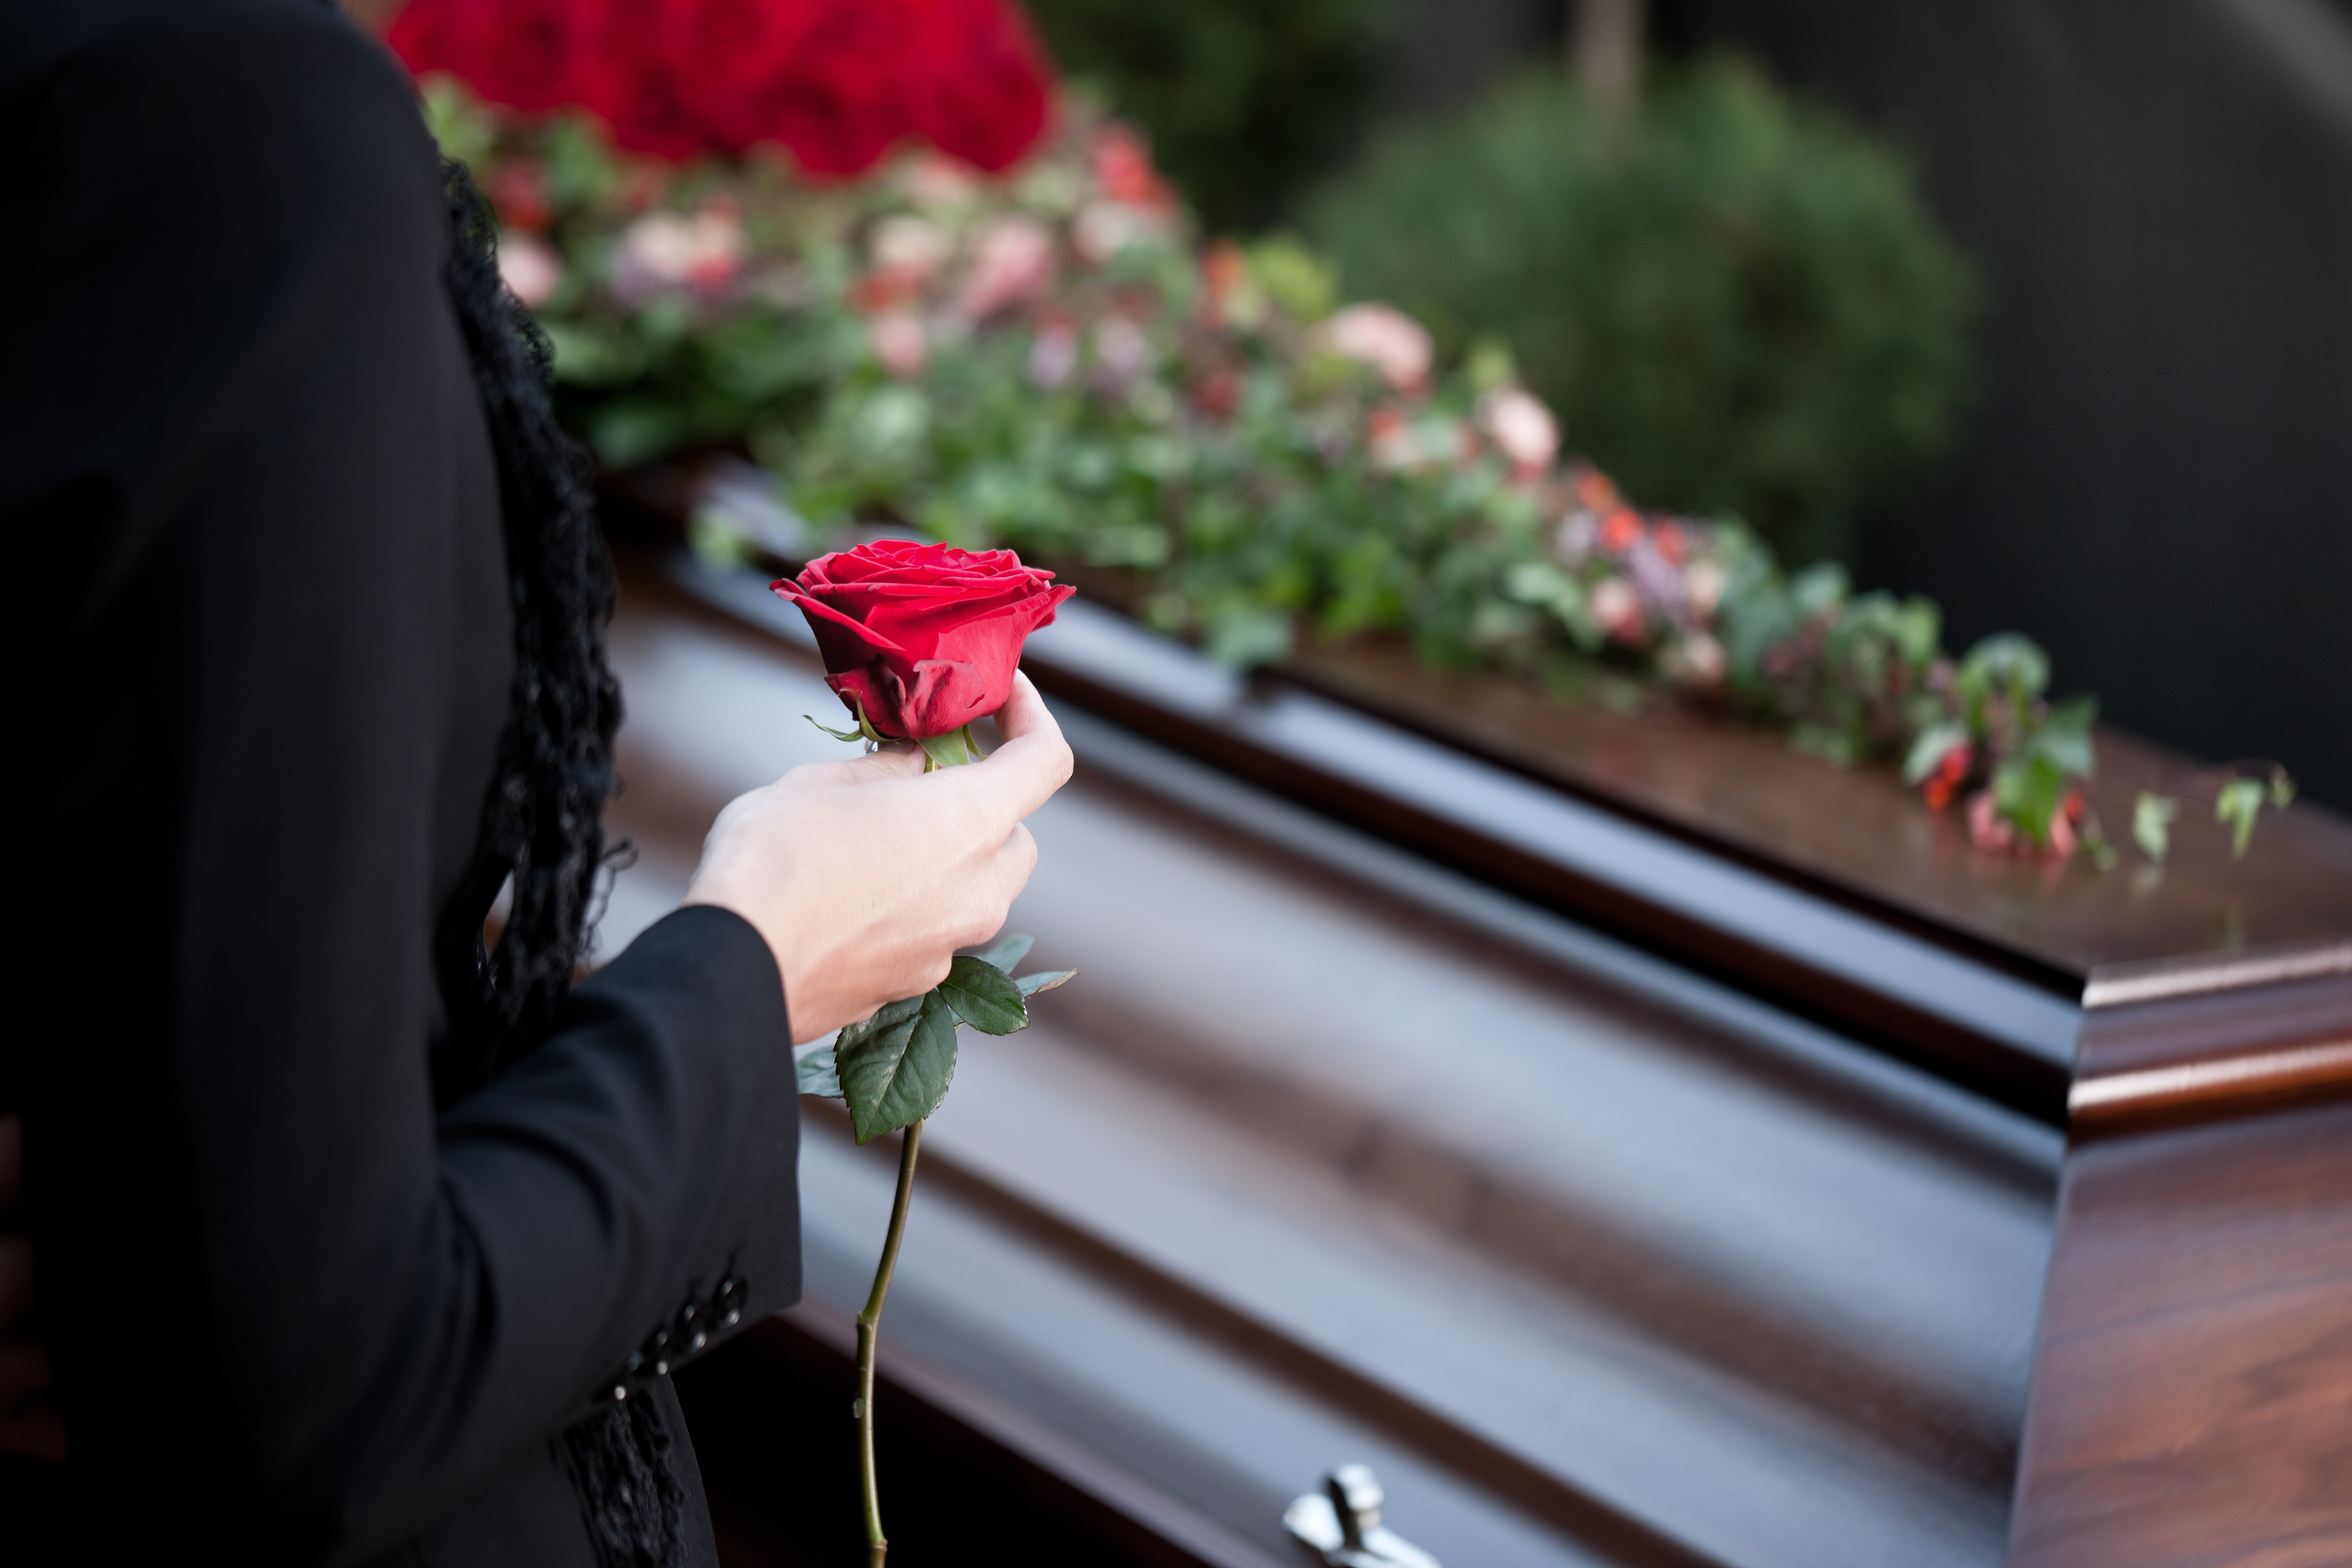 The most common funeral flower etiquette questions most common funeral flower etiquette questions izmirmasajfo